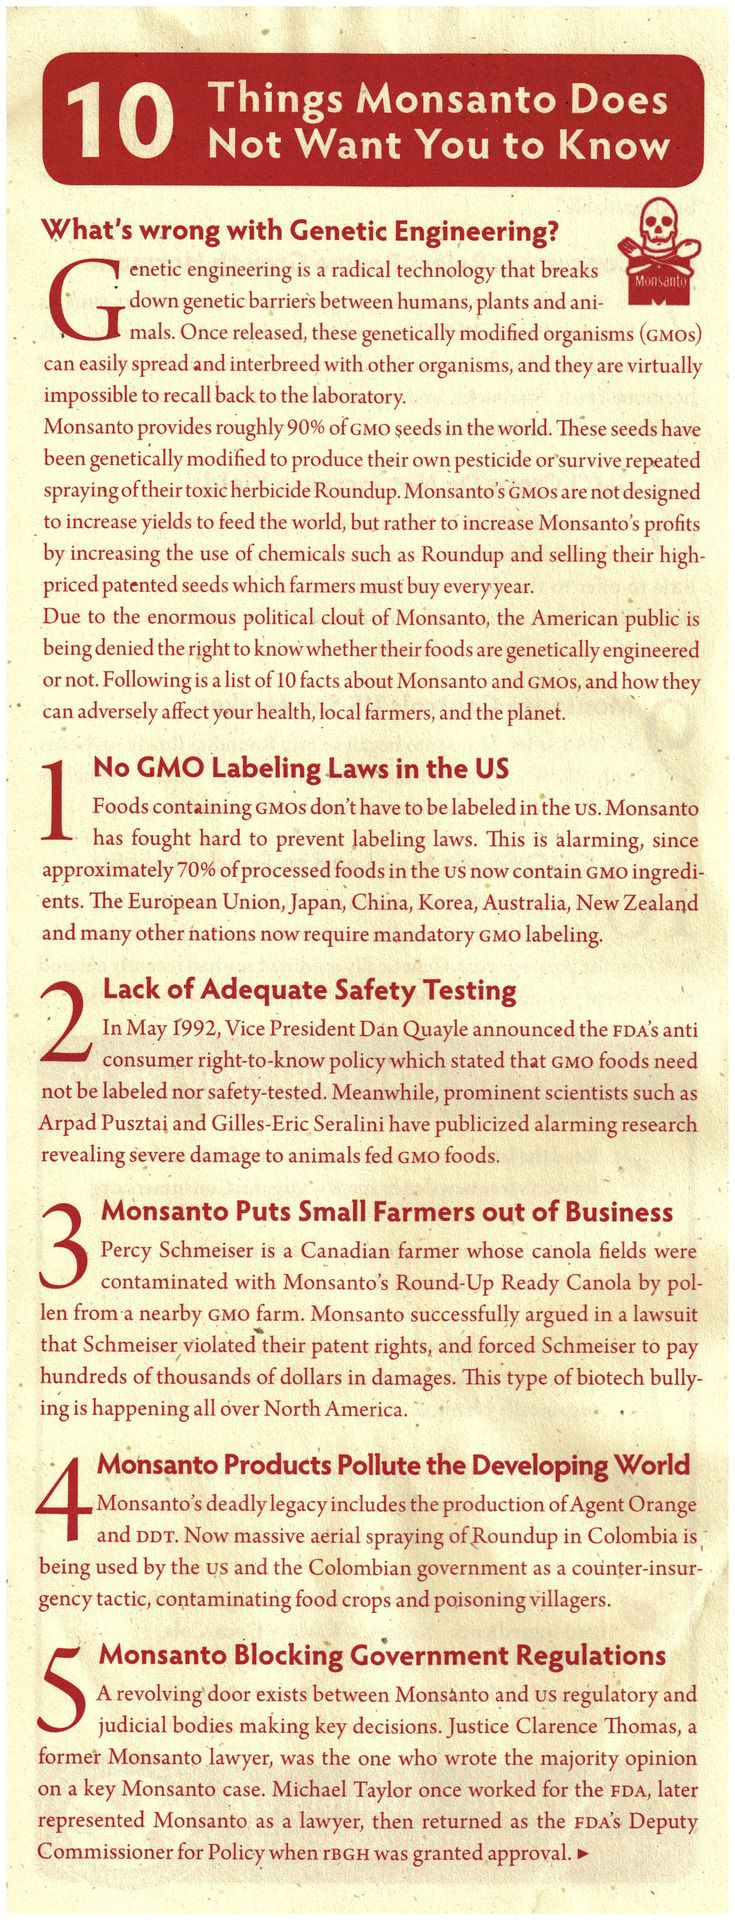 Chemical-Free-Life.org • GENETICALLY MODIFIED FOOD: 10 Things Monsanto...